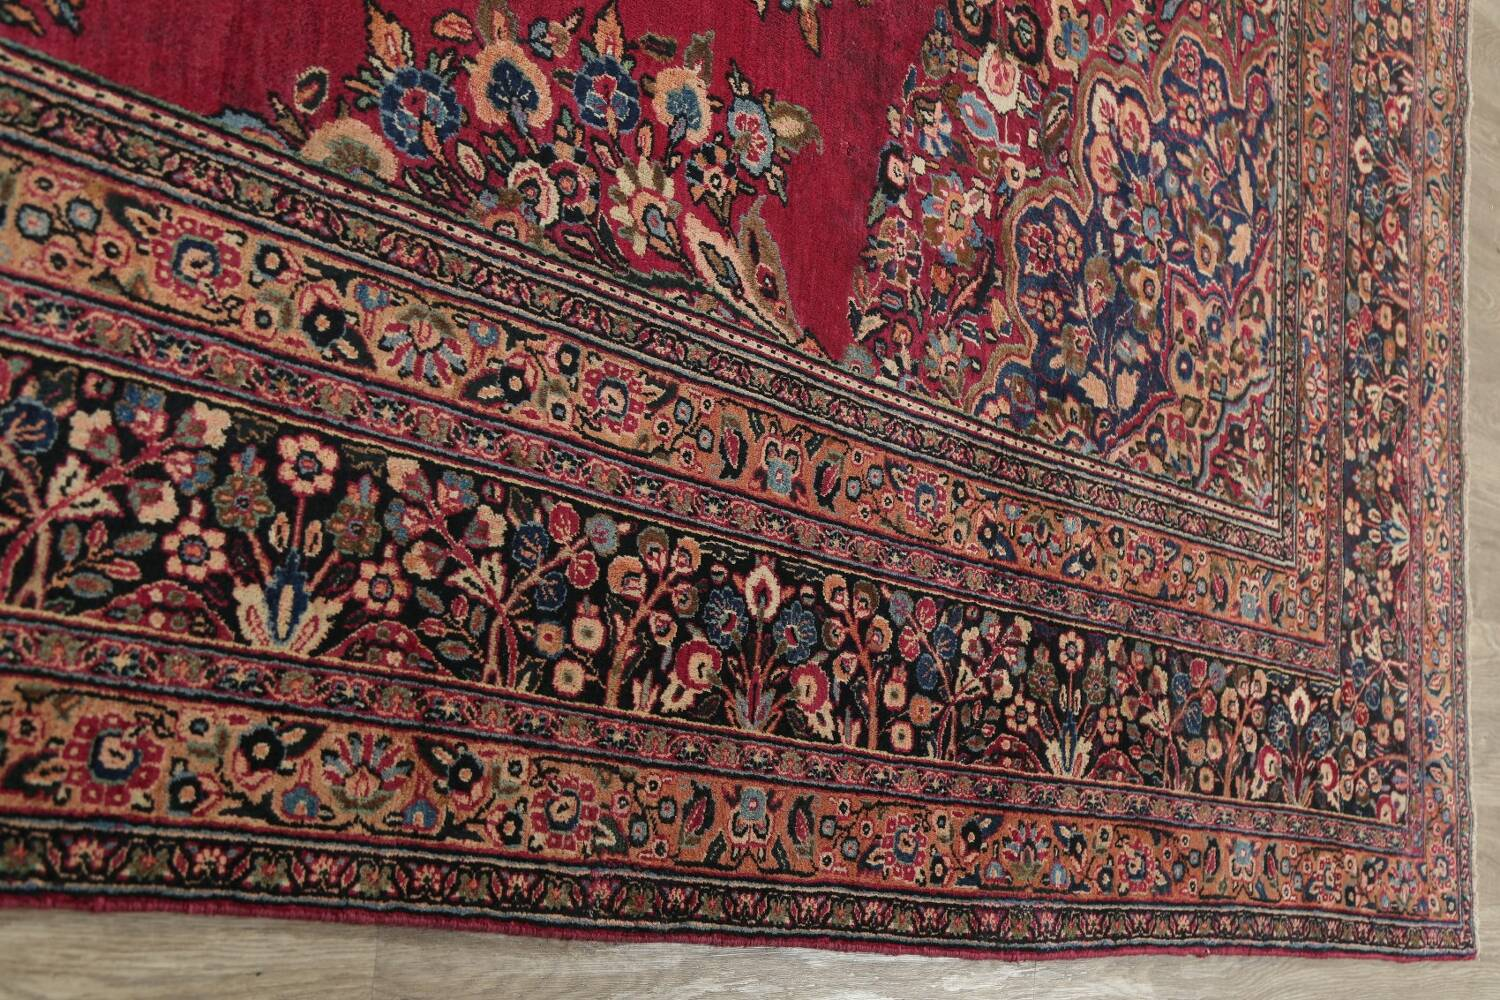 Antique Floral Red Dorokhsh Persian Rug Large 11x14 image 17